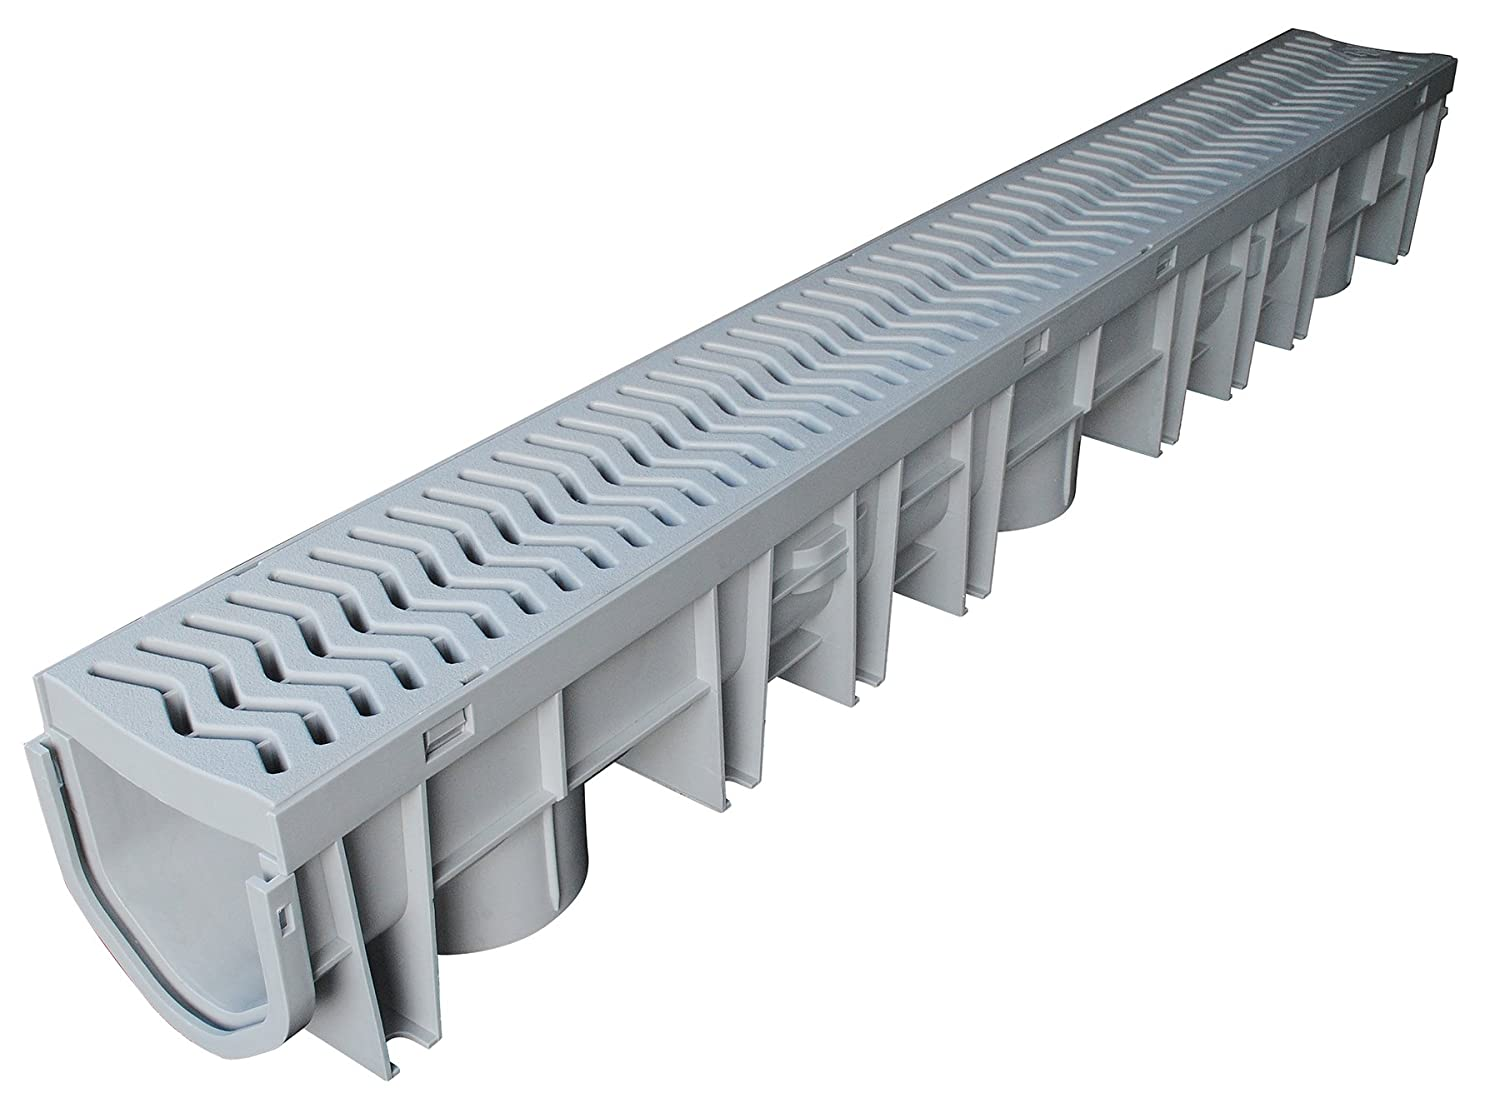 Fernco FSDP-CHGG StormDrain Plus Channel and Grey Grate Assembly 70%OFF